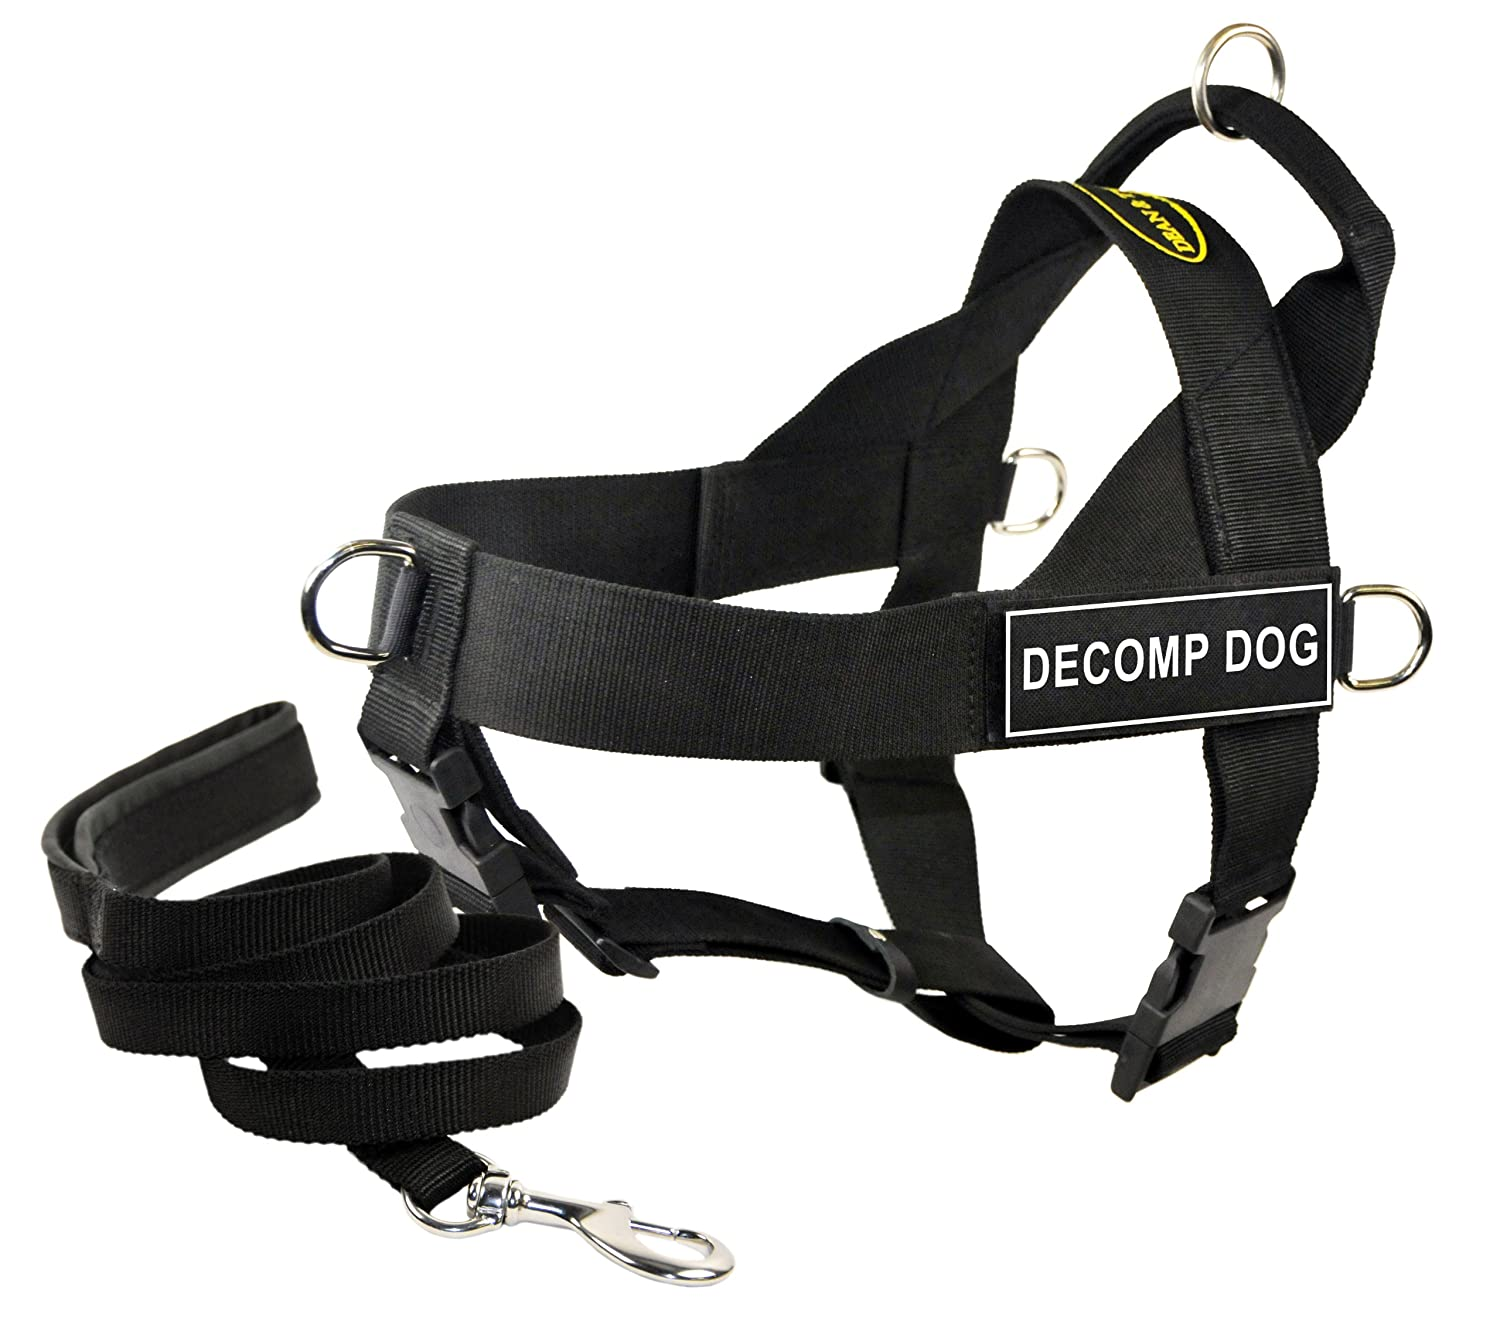 Dean & Tyler's DT Universal DECOMP Dog  Harness, Small, with 6 ft Padded Puppy Leash.